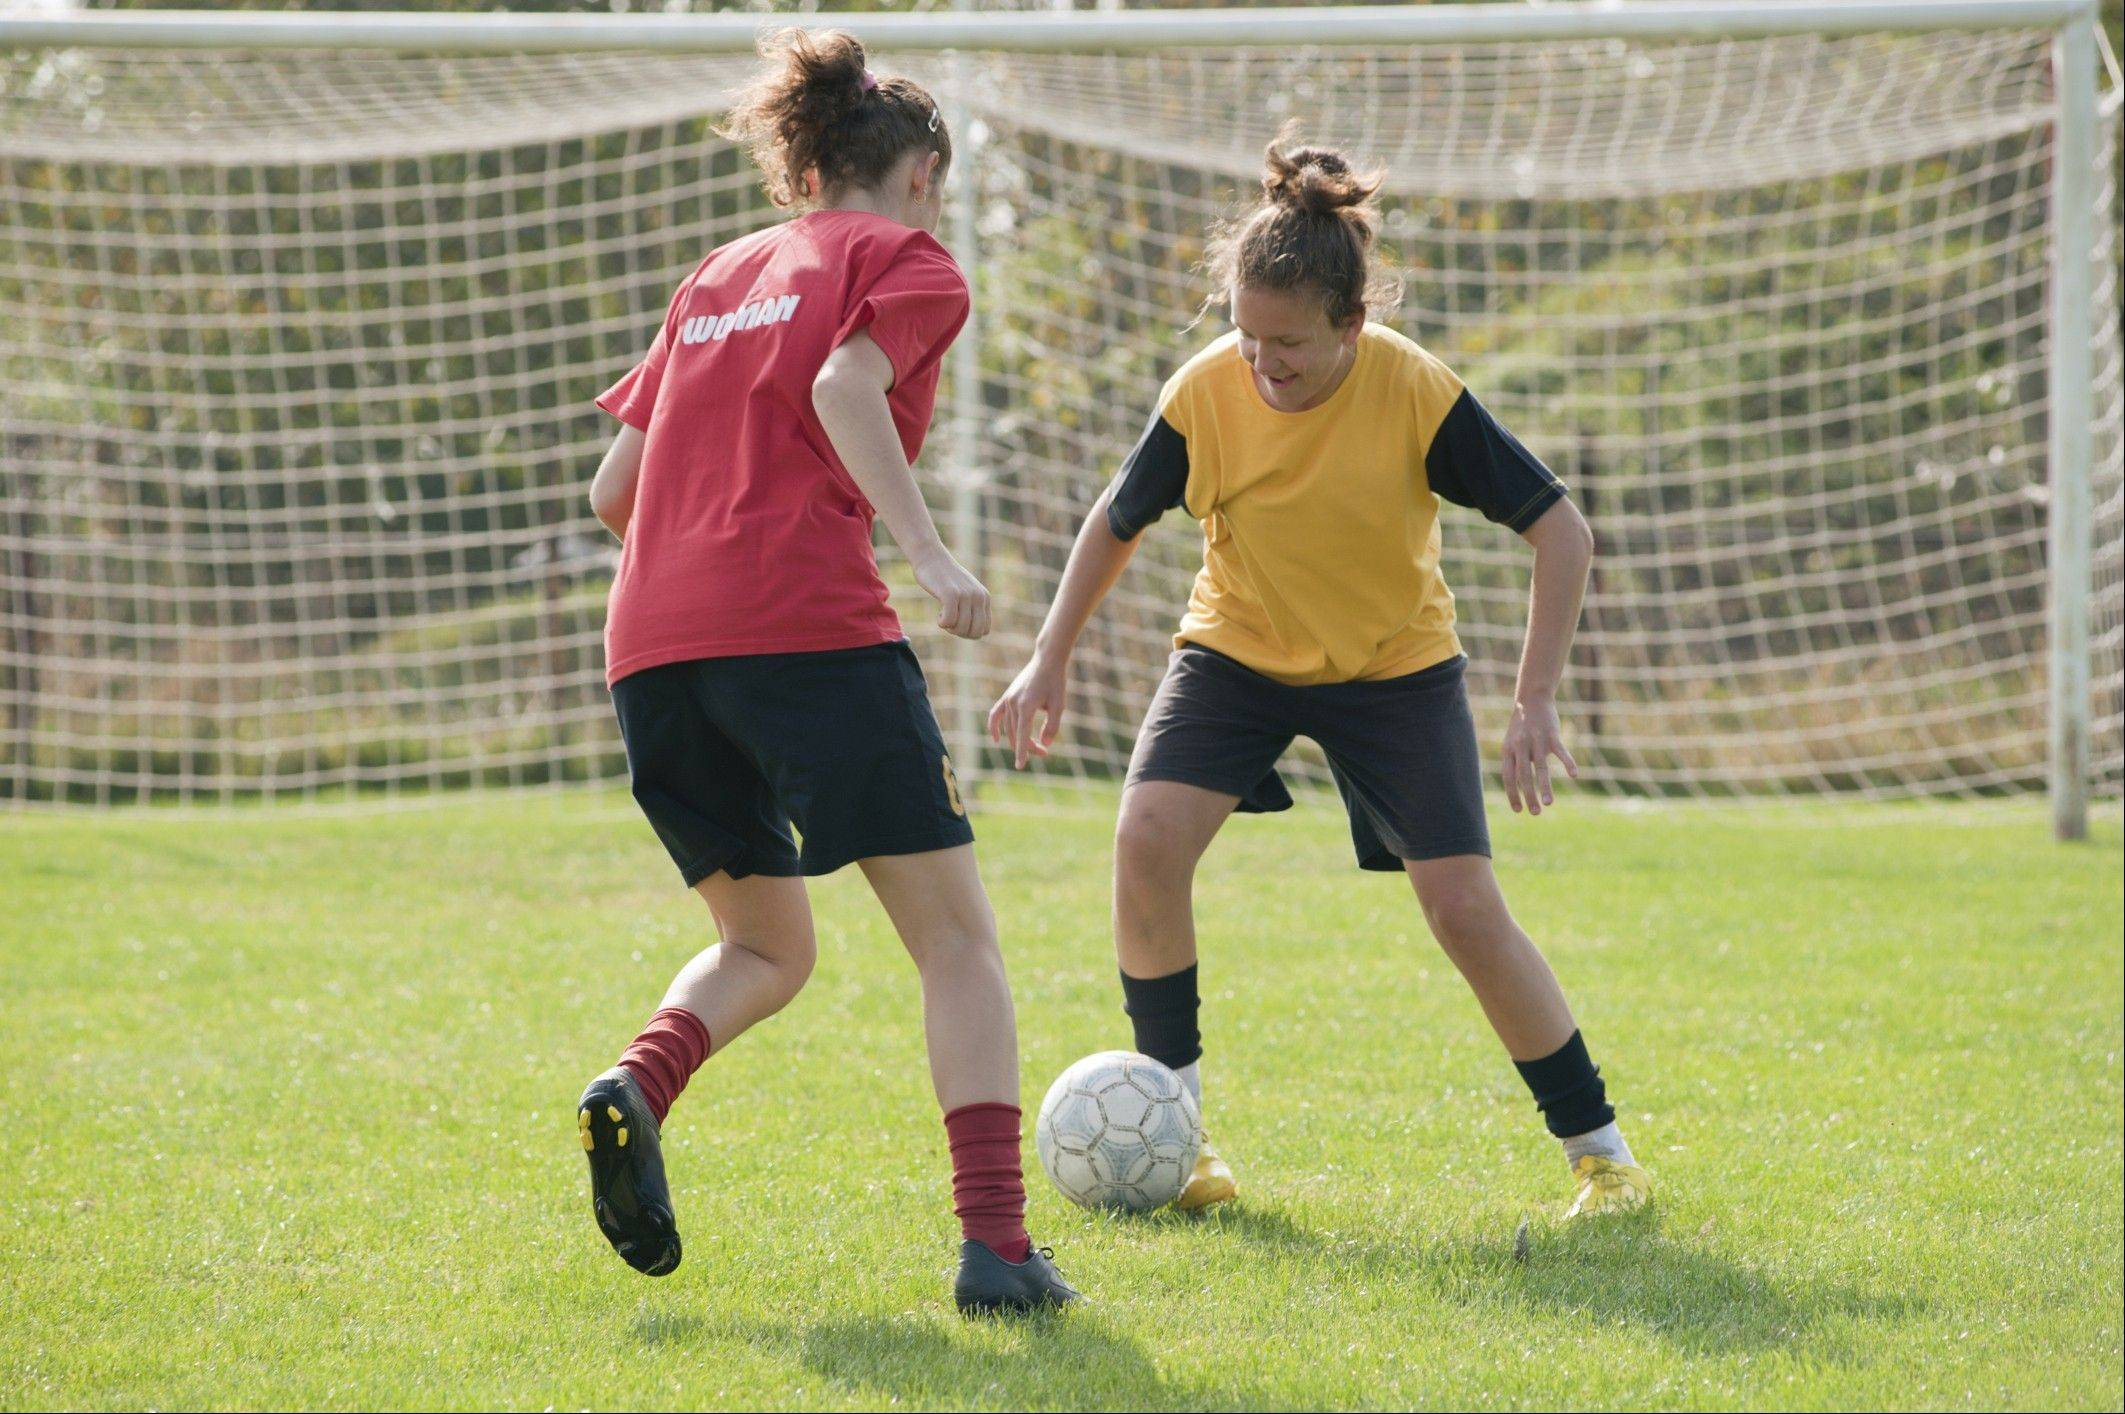 Girls and women are more likely to suffer concussions than boys and men in comparable sports such as soccer, baseball and basketball, say researchers.